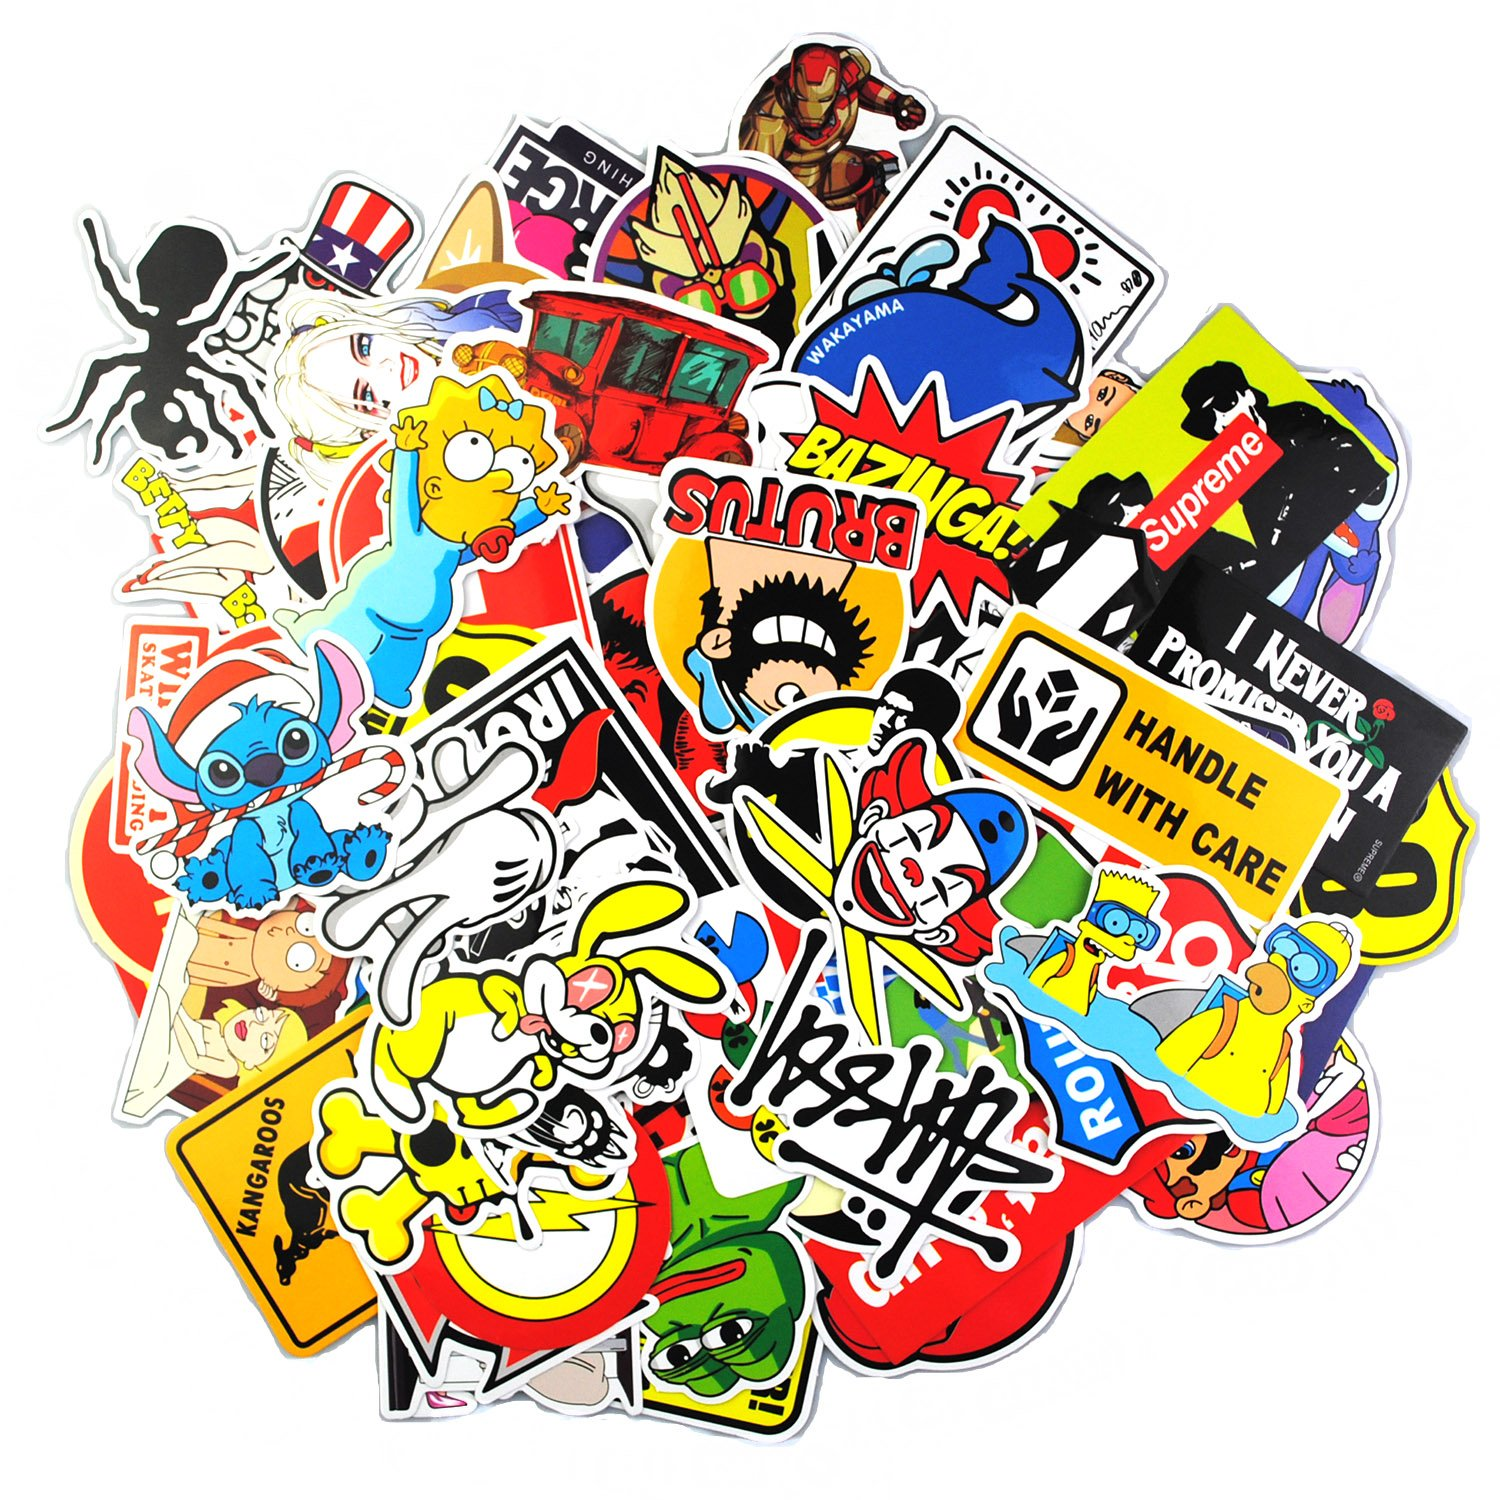 Sticker Pack [200pcs],Sanmatic Sticker Decals Vinyls for Laptop,Kids,Teachers,Cars,Motorcycle,Bicycle,Skateboard Luggage,Bumper Stickers Decals bomb Waterproof